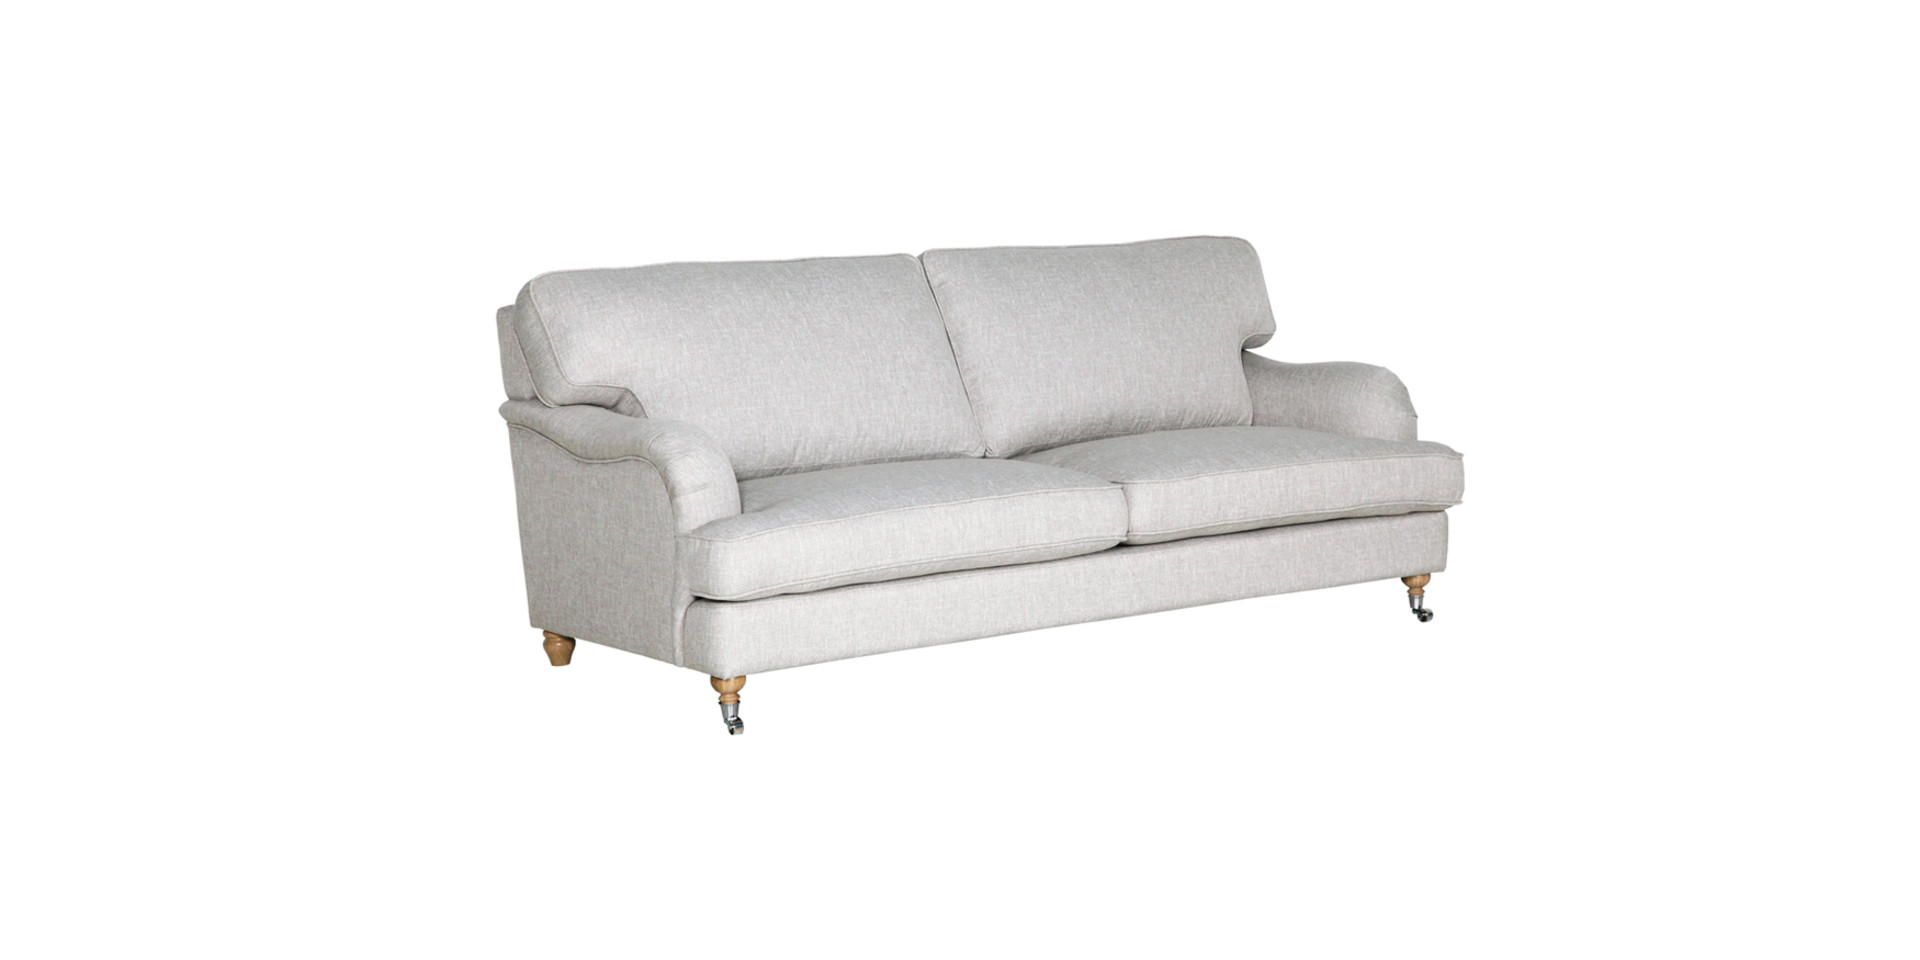 sits-howard-canape-3seater_nancy2_beige_2